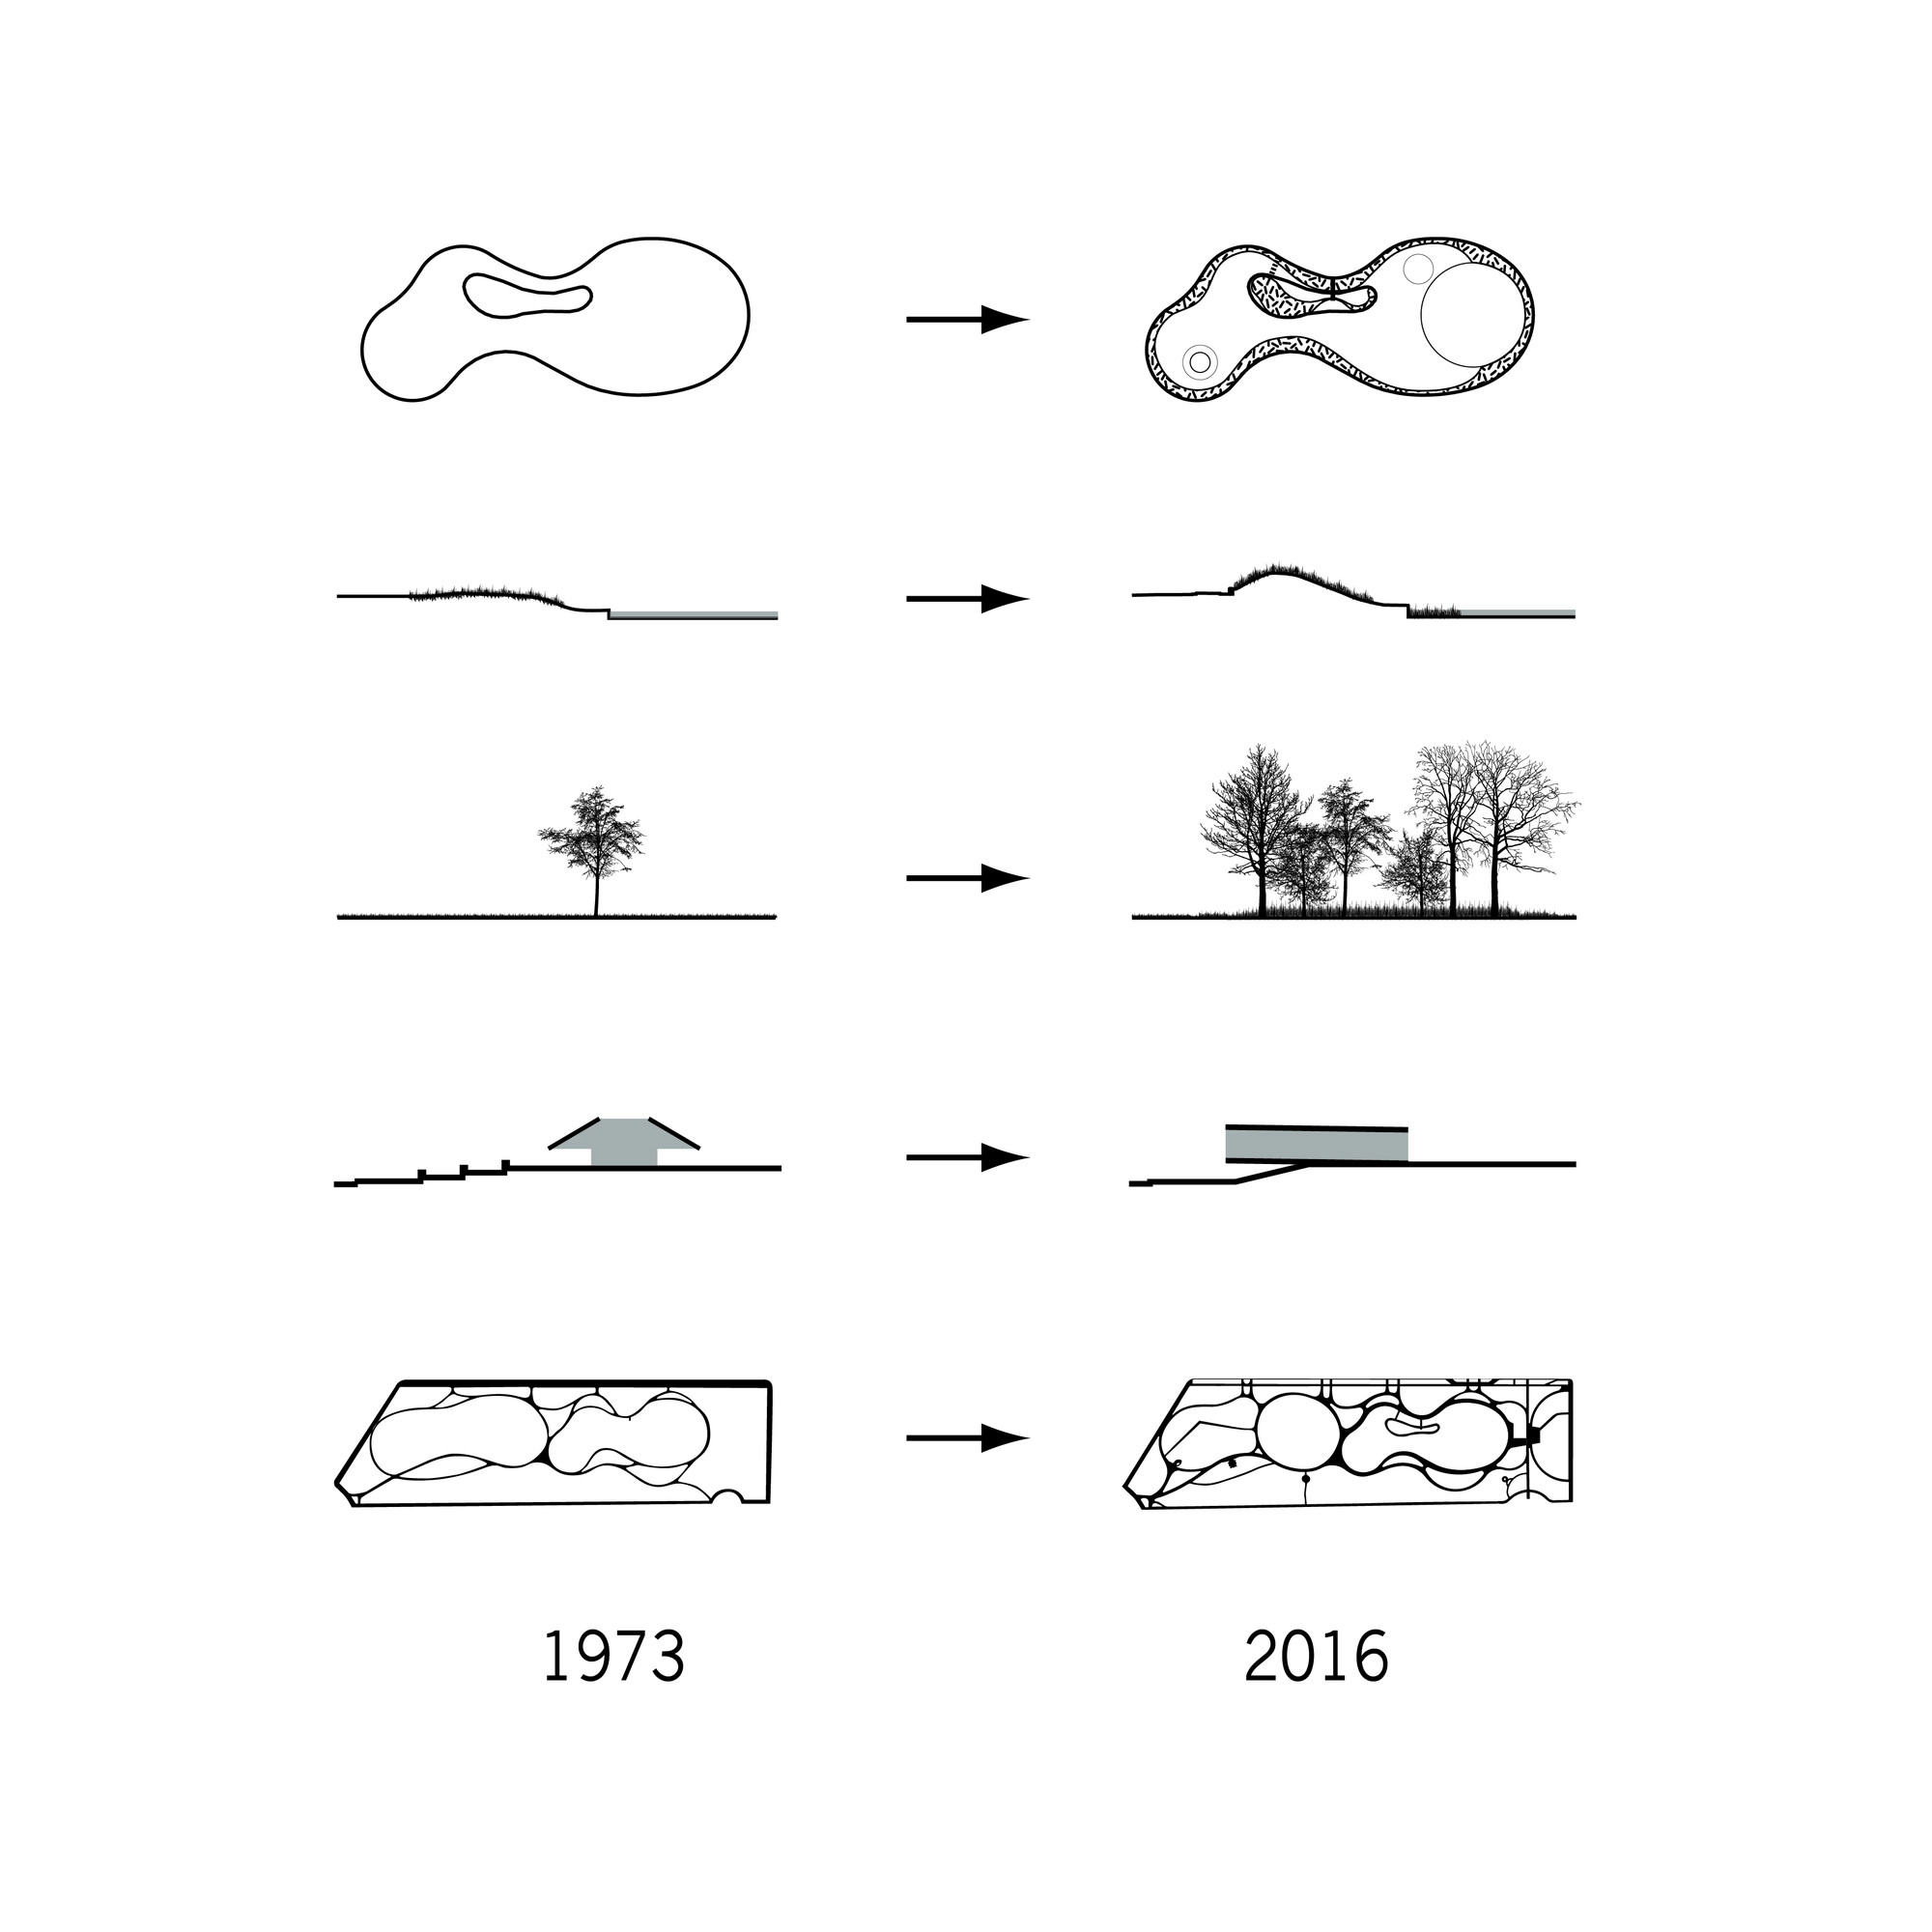 hight resolution of rogers partners and pwp s constitution gardens redesign approved for national mall concept diagram image pwp landscape architecture